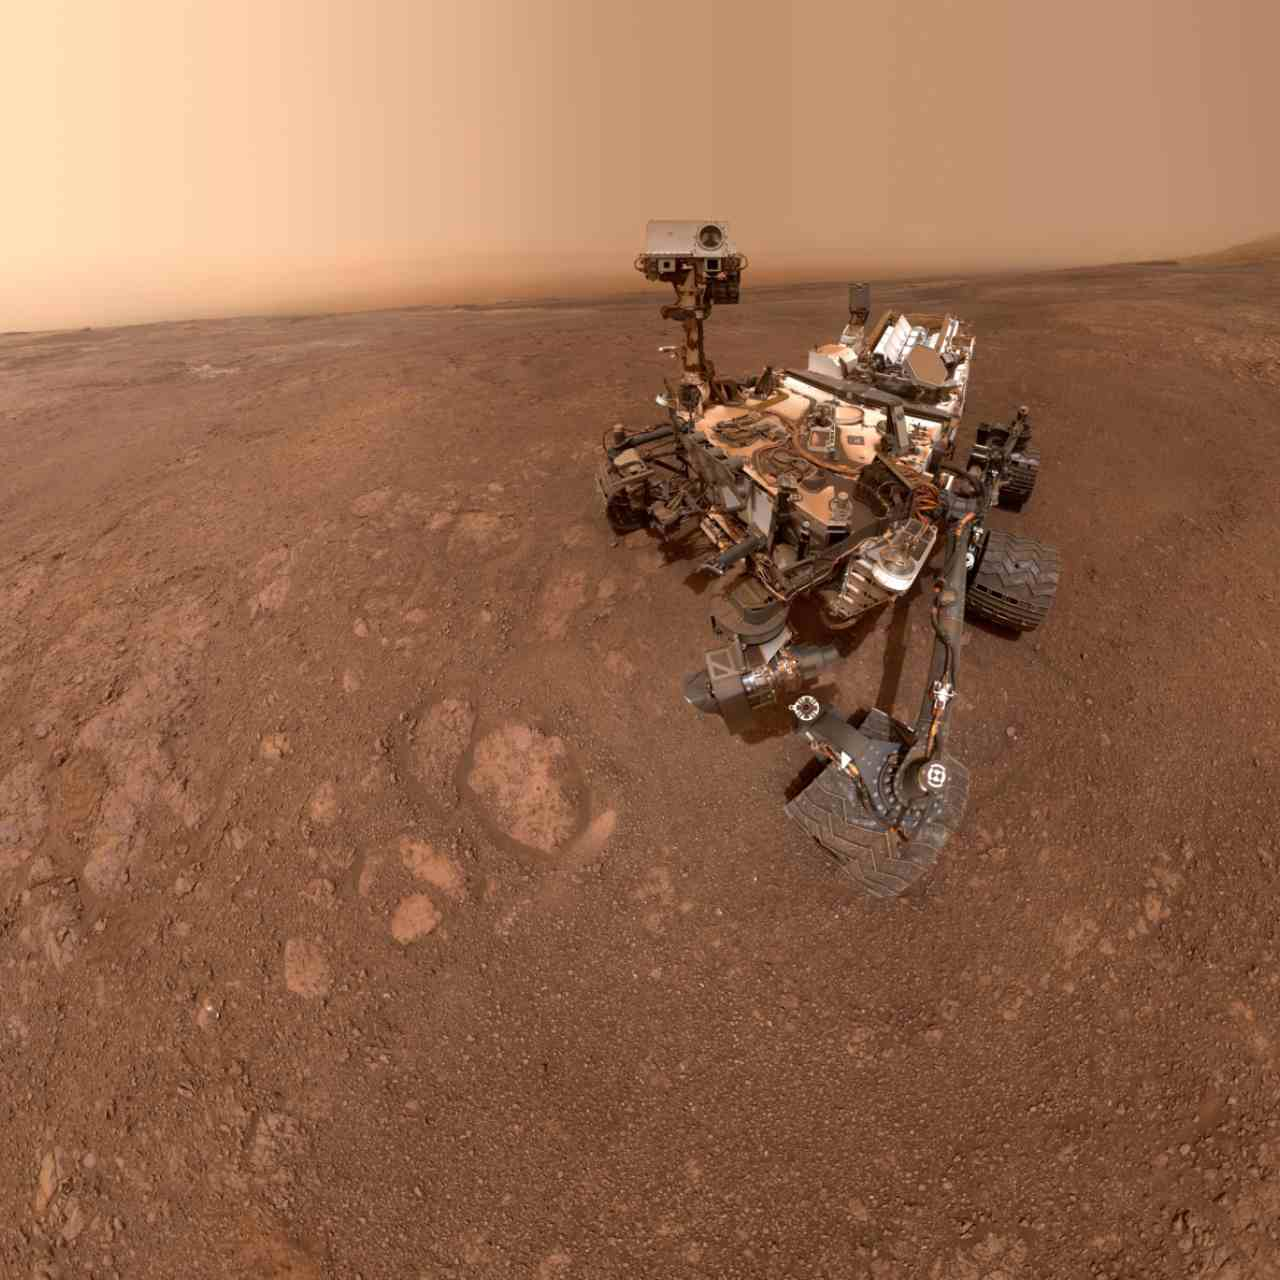 NASAs Curiosity rover clicks one last selfie before leaving Vera Rubin ridge on Mars